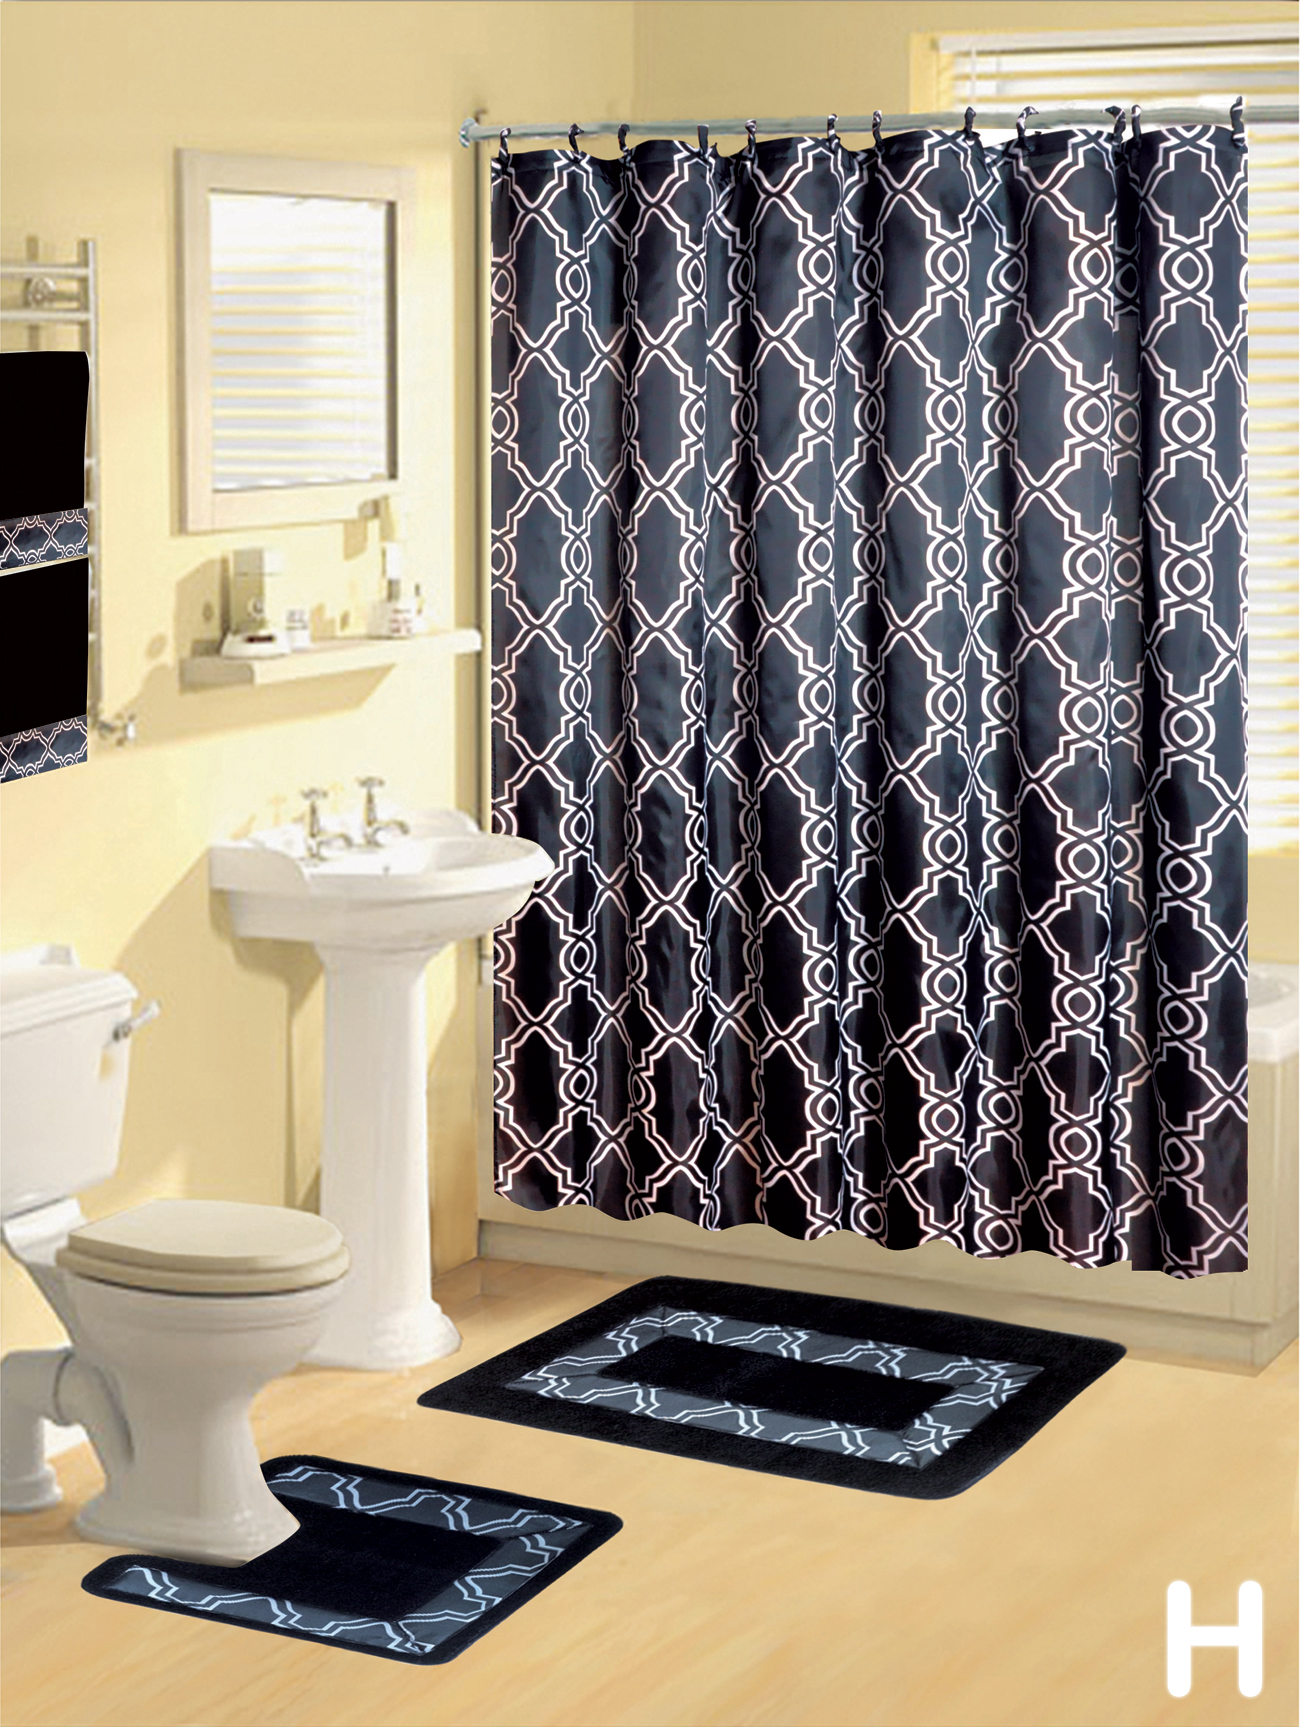 Shower Curtains 17 Pcs Set Modern Bath Mat Contour Rug